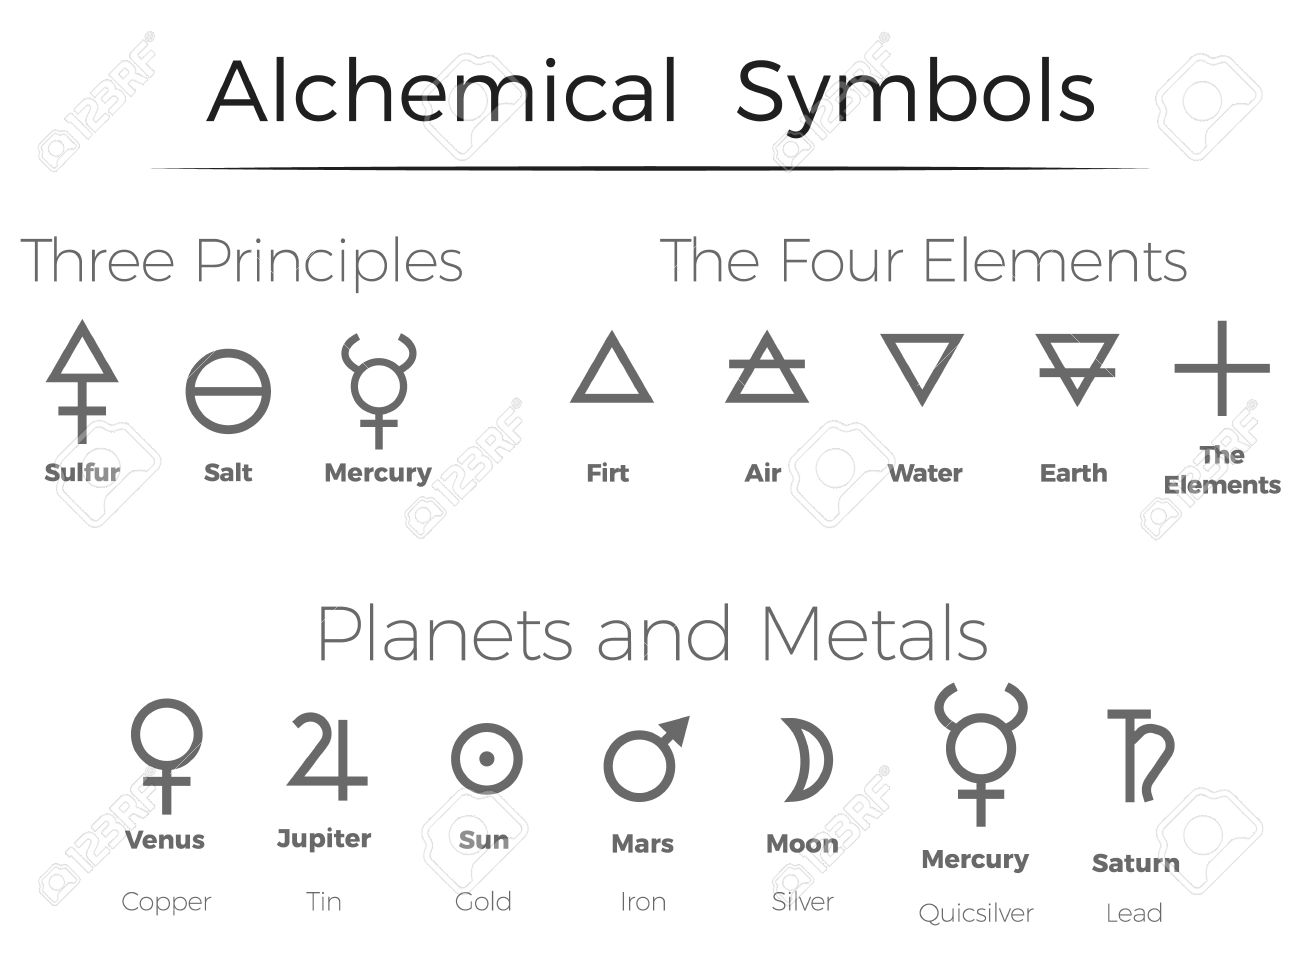 Alchemical symbols icons set alchemy elements metals pictogram alchemical symbols icons set alchemy elements metals pictogram stock vector 81189441 biocorpaavc Gallery